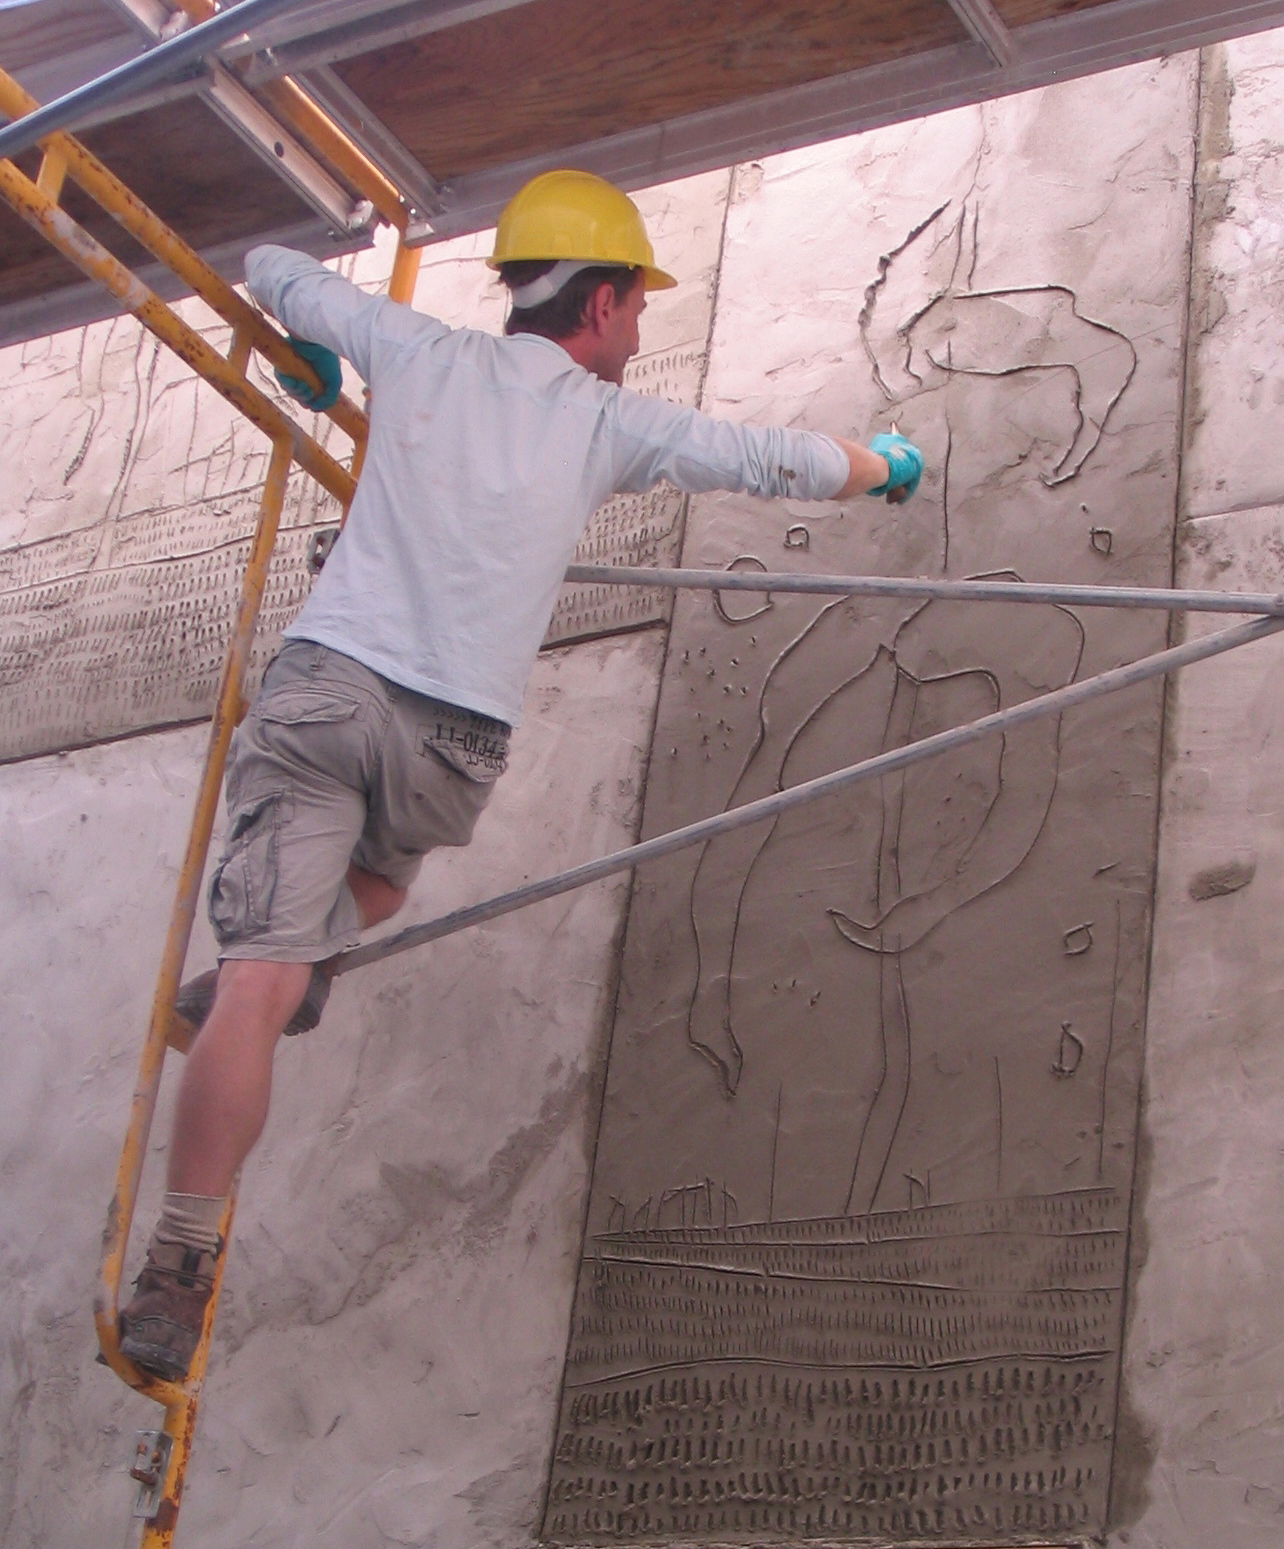 Griffin carves an exterior panel using a casuary bird femur bone knife—a dedication to early artistic tools and methods. Each panel received a fresh topcoat of concrete, after which the artist had no more than 15 minutes to make his marks before his canva